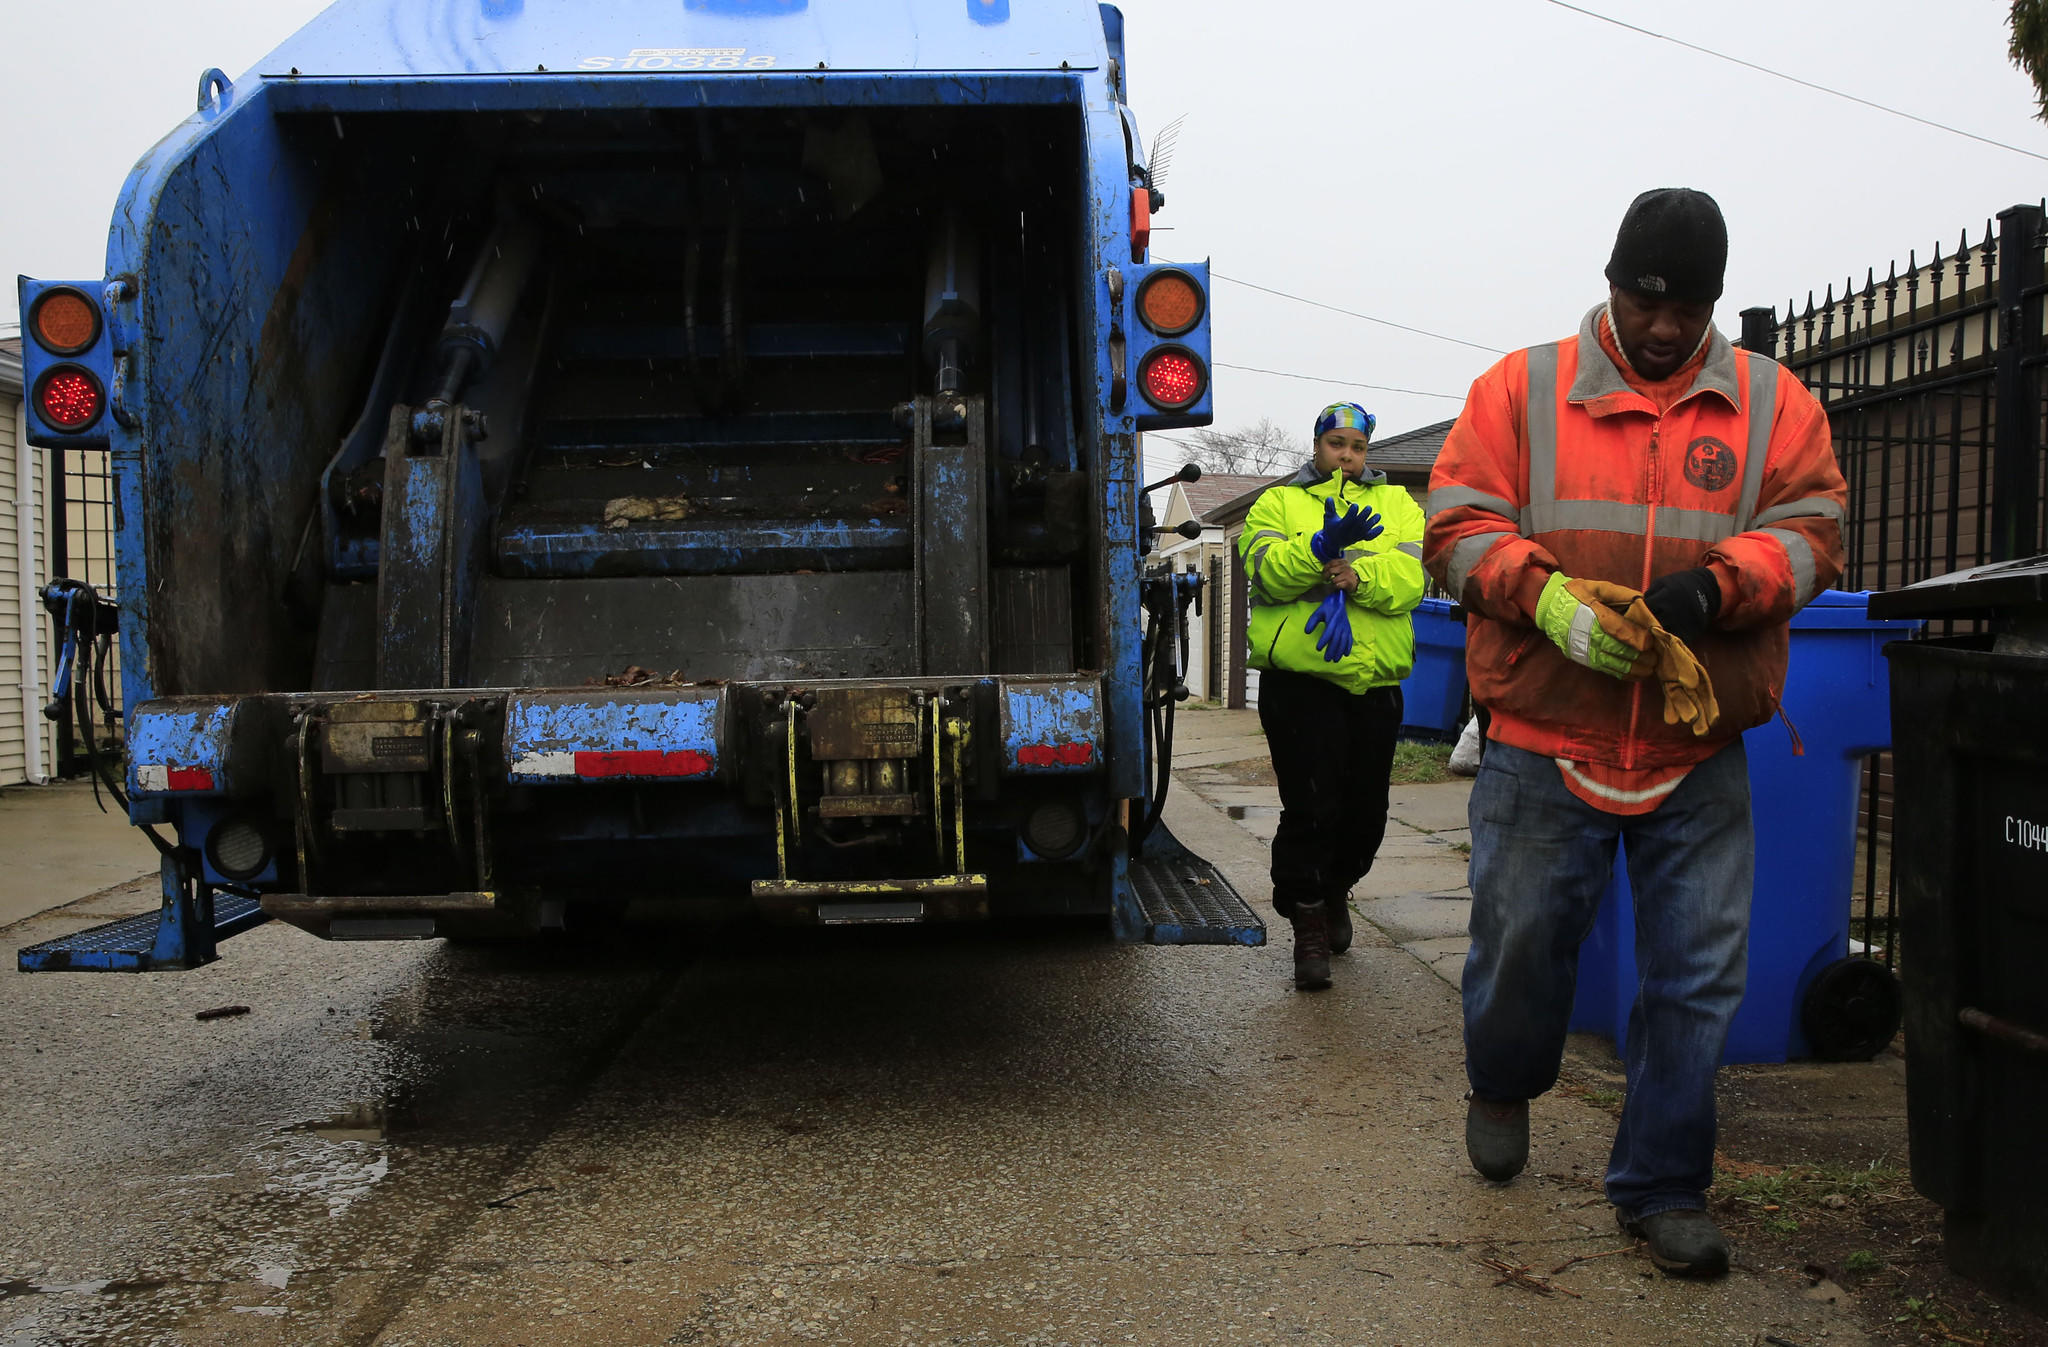 City Streets and Sanitation laborers Jauyonta Morris, left, and Steven Lewis collecting refuse under the older, ward-based system.